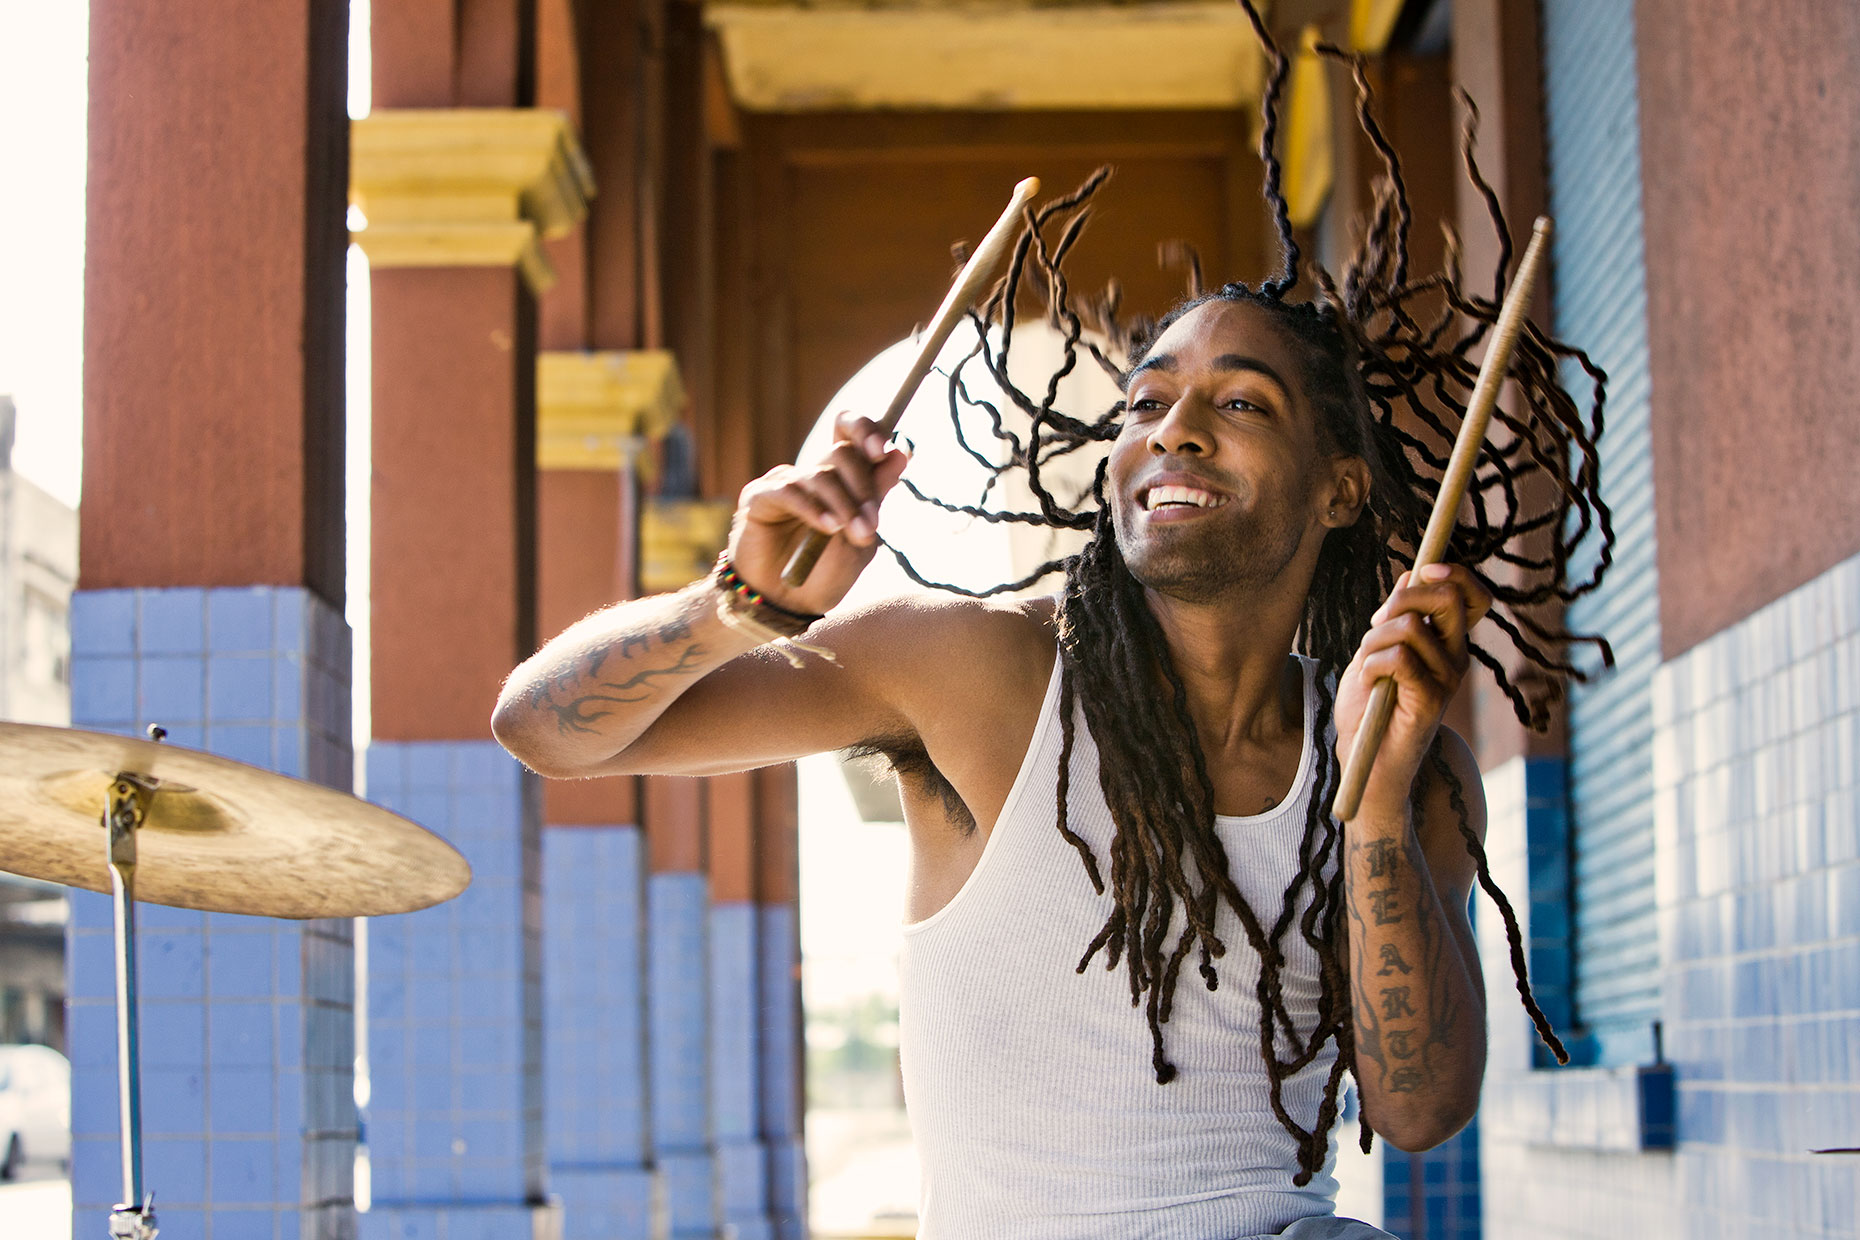 man-with-dreadlocks-drumming